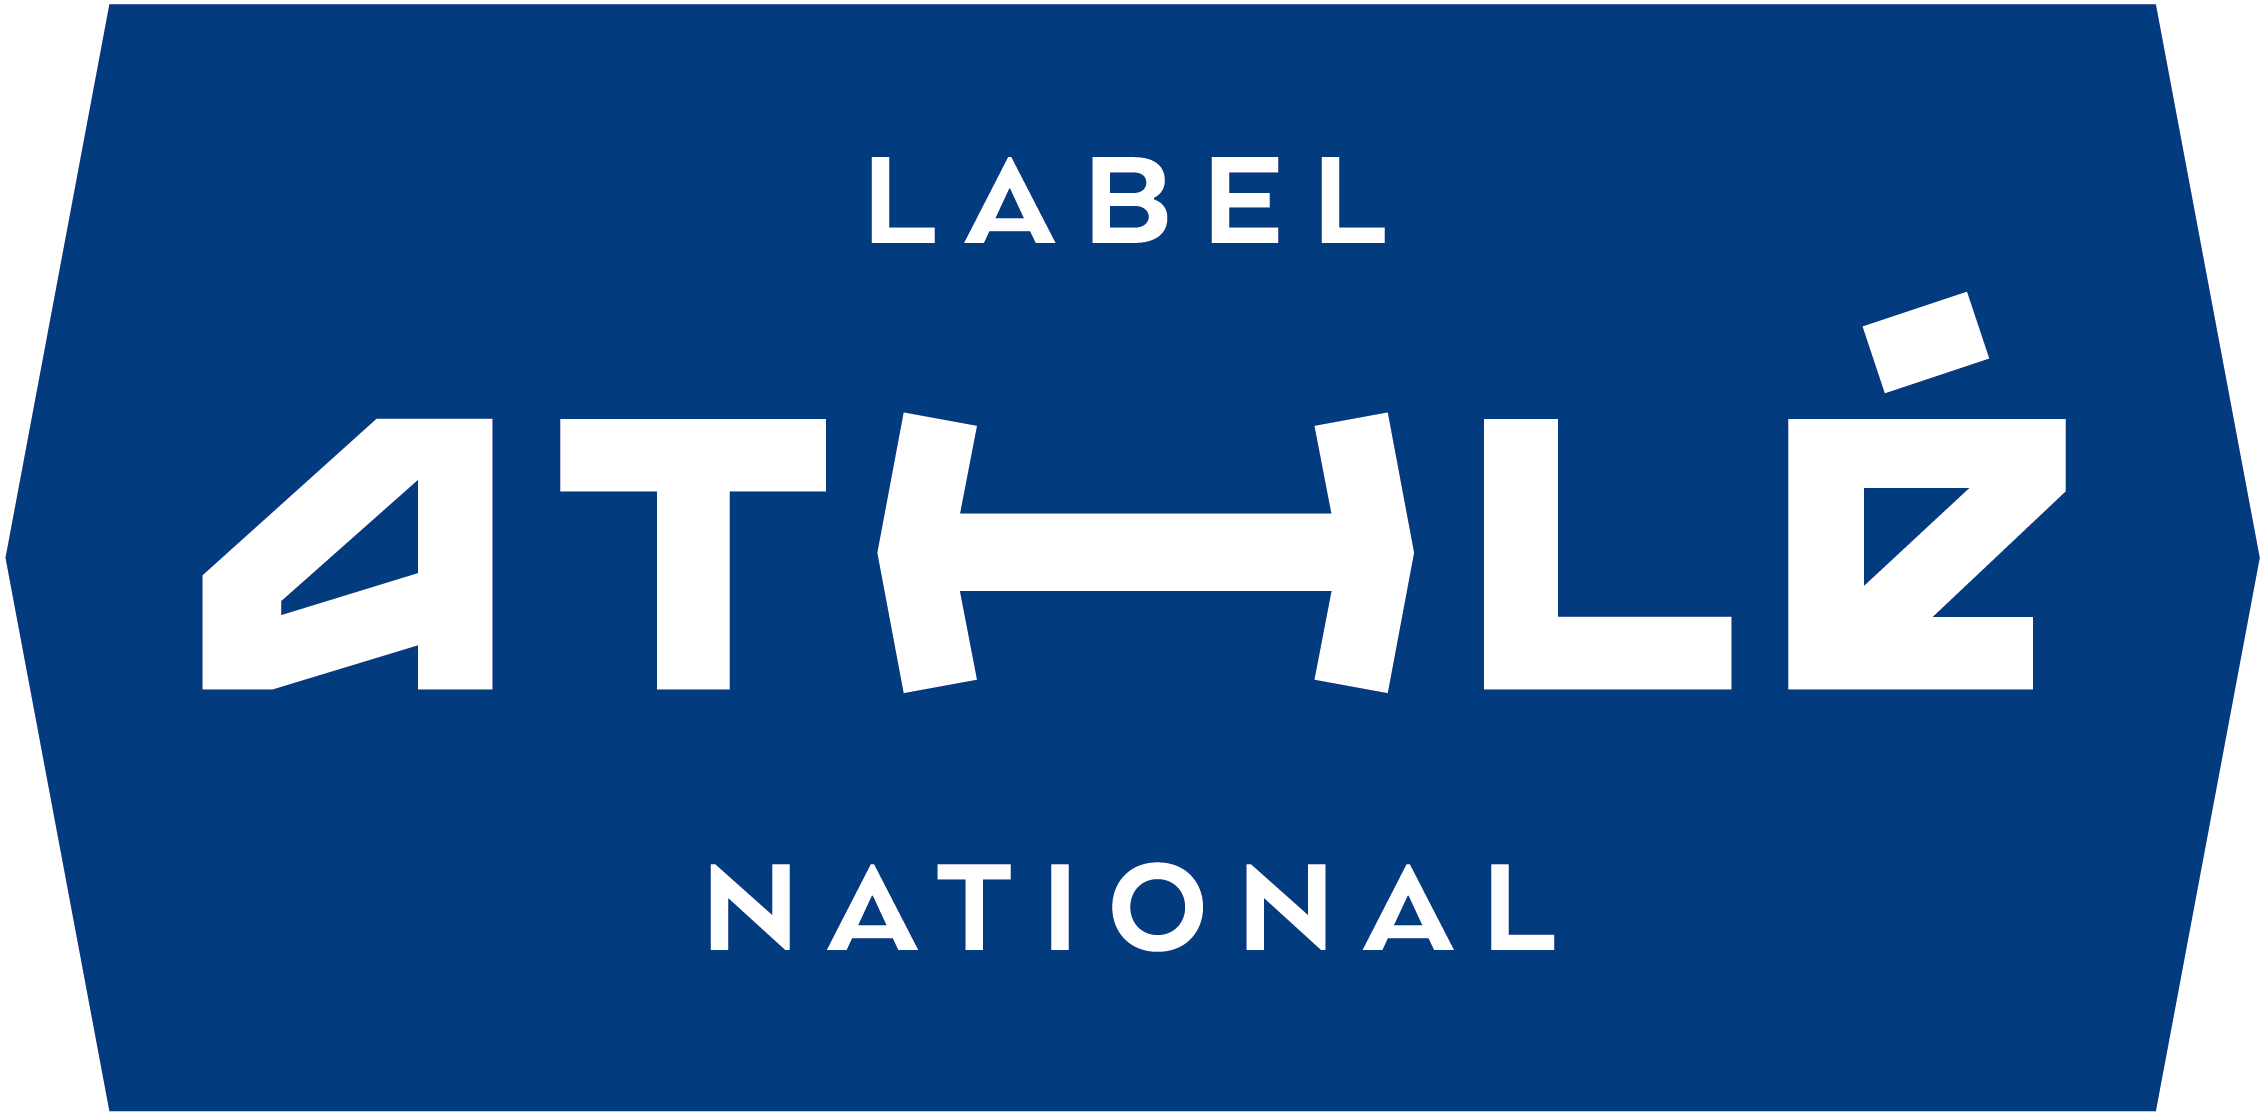 Label_National_ATHLE-Bleu.png